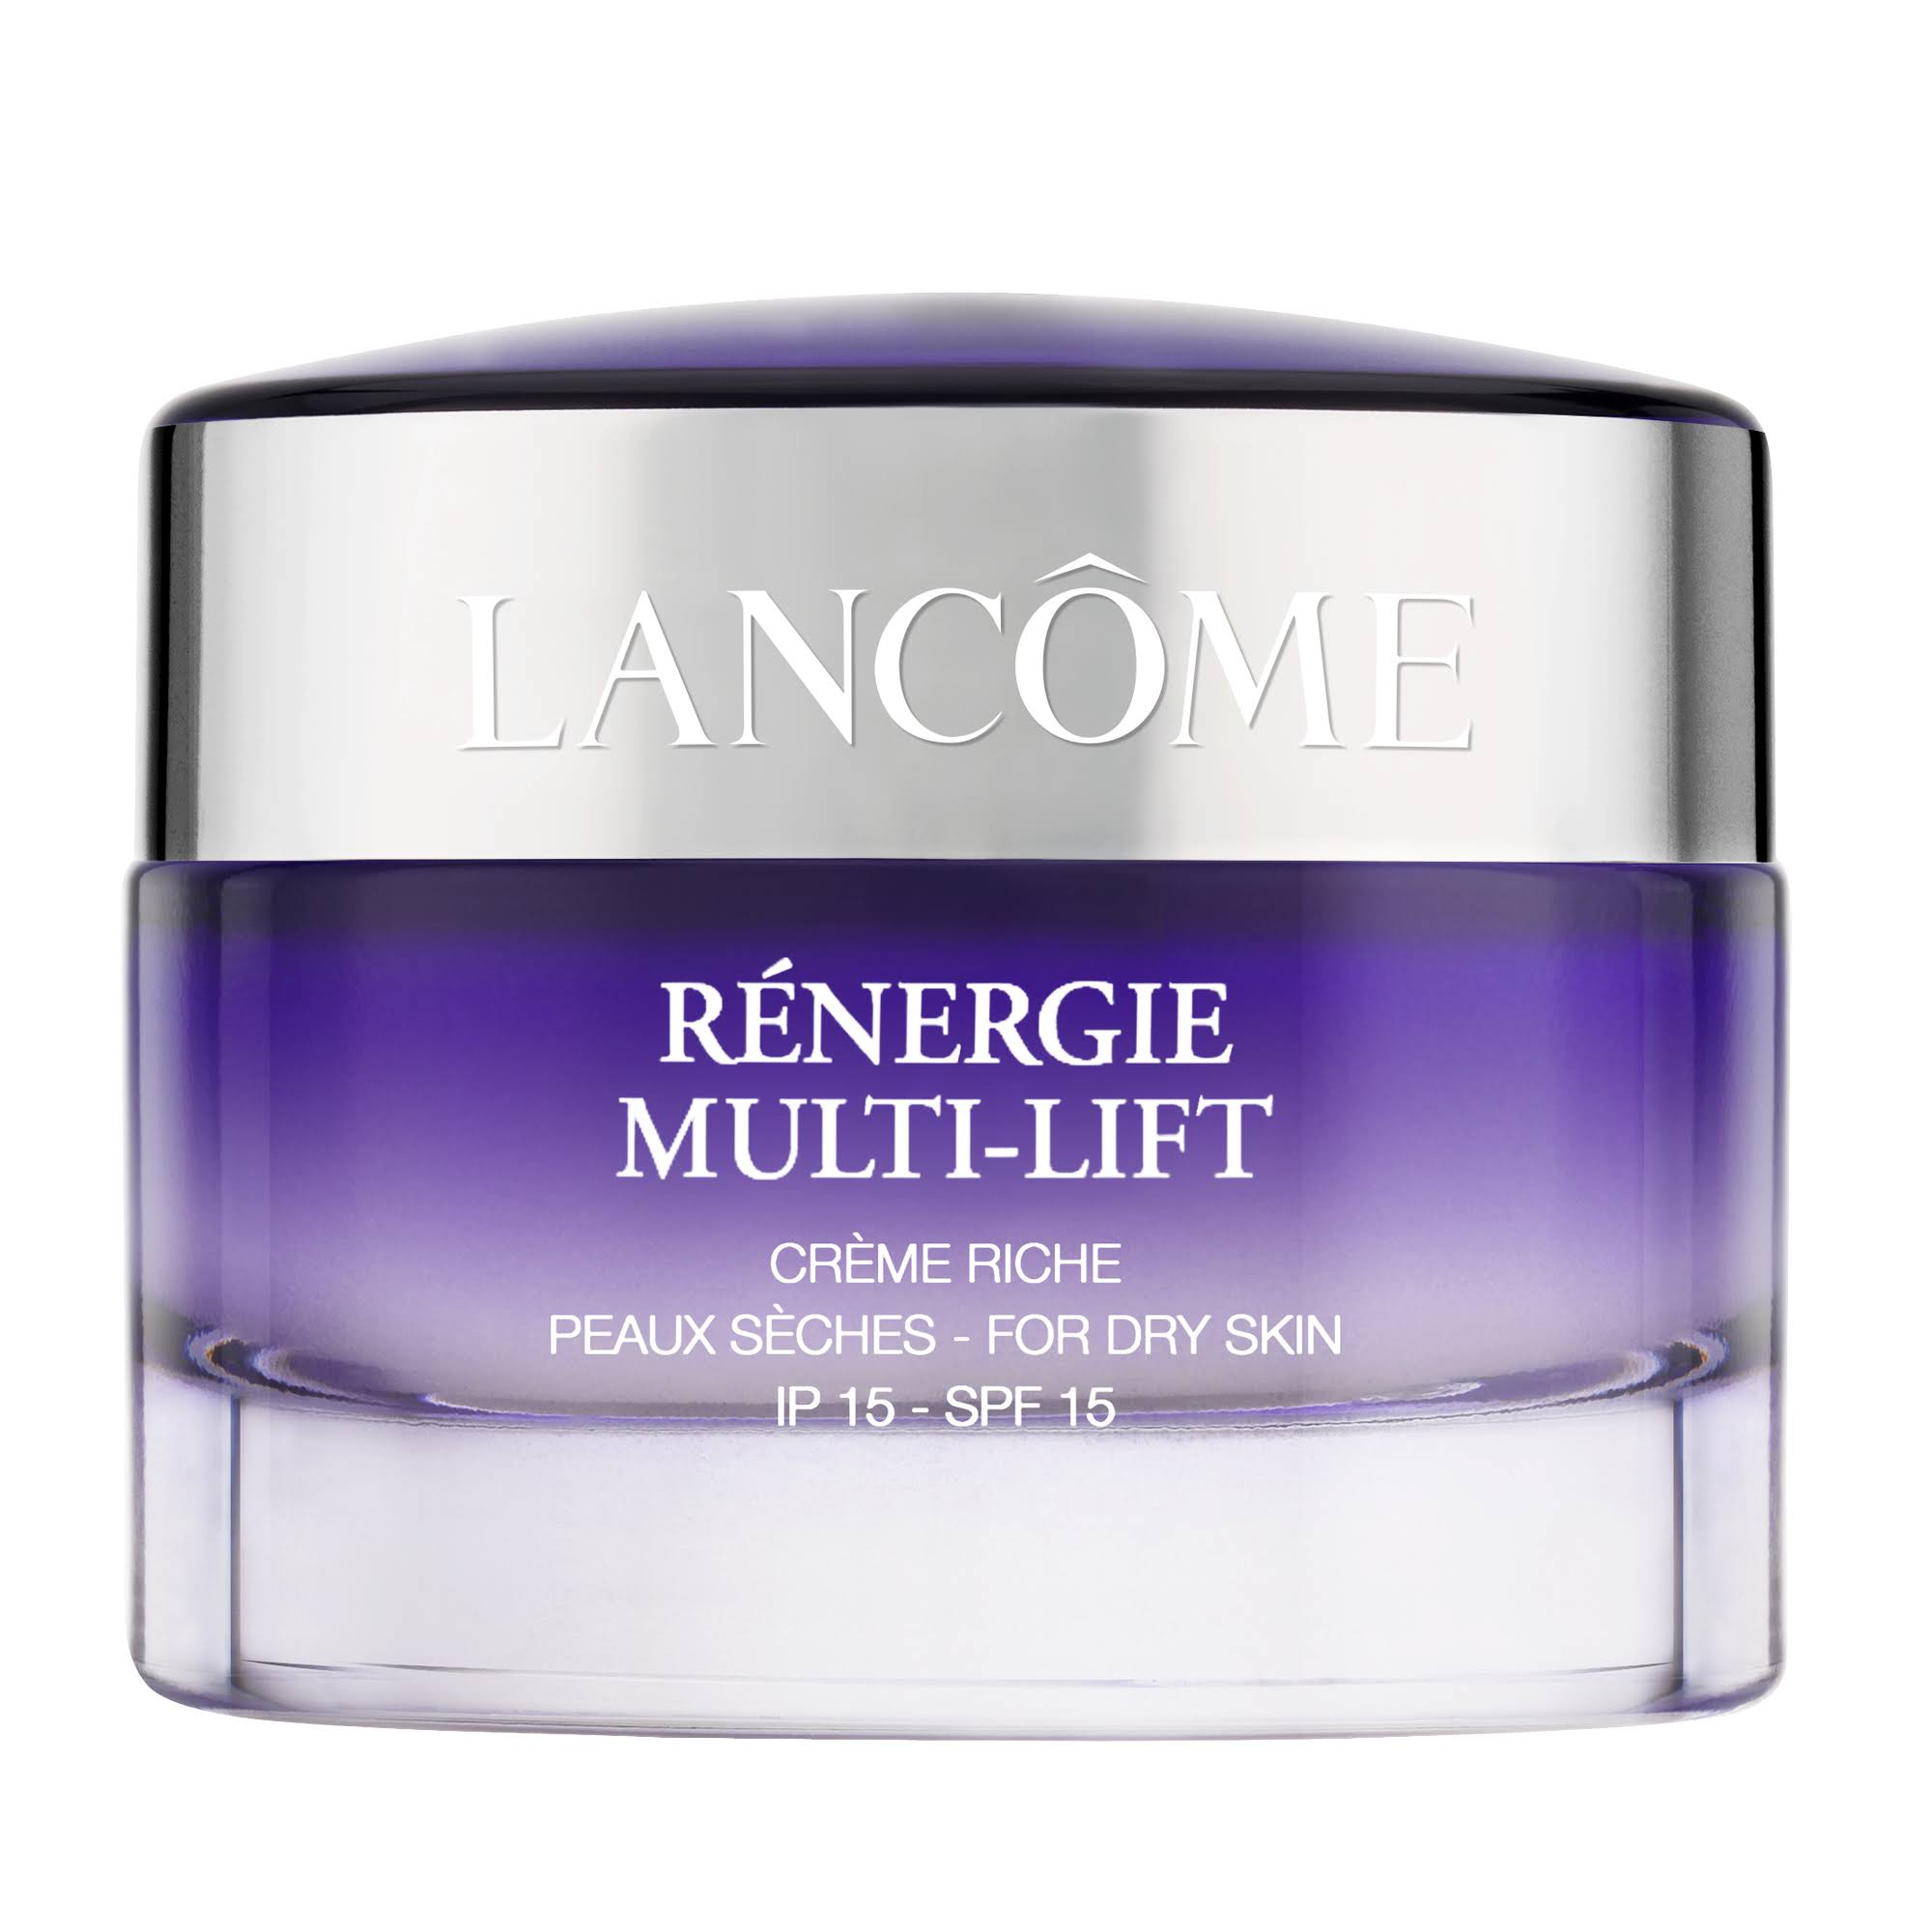 Lancome Renergie Multi-Lift Lifting Cream - Dry Skin, 50ml